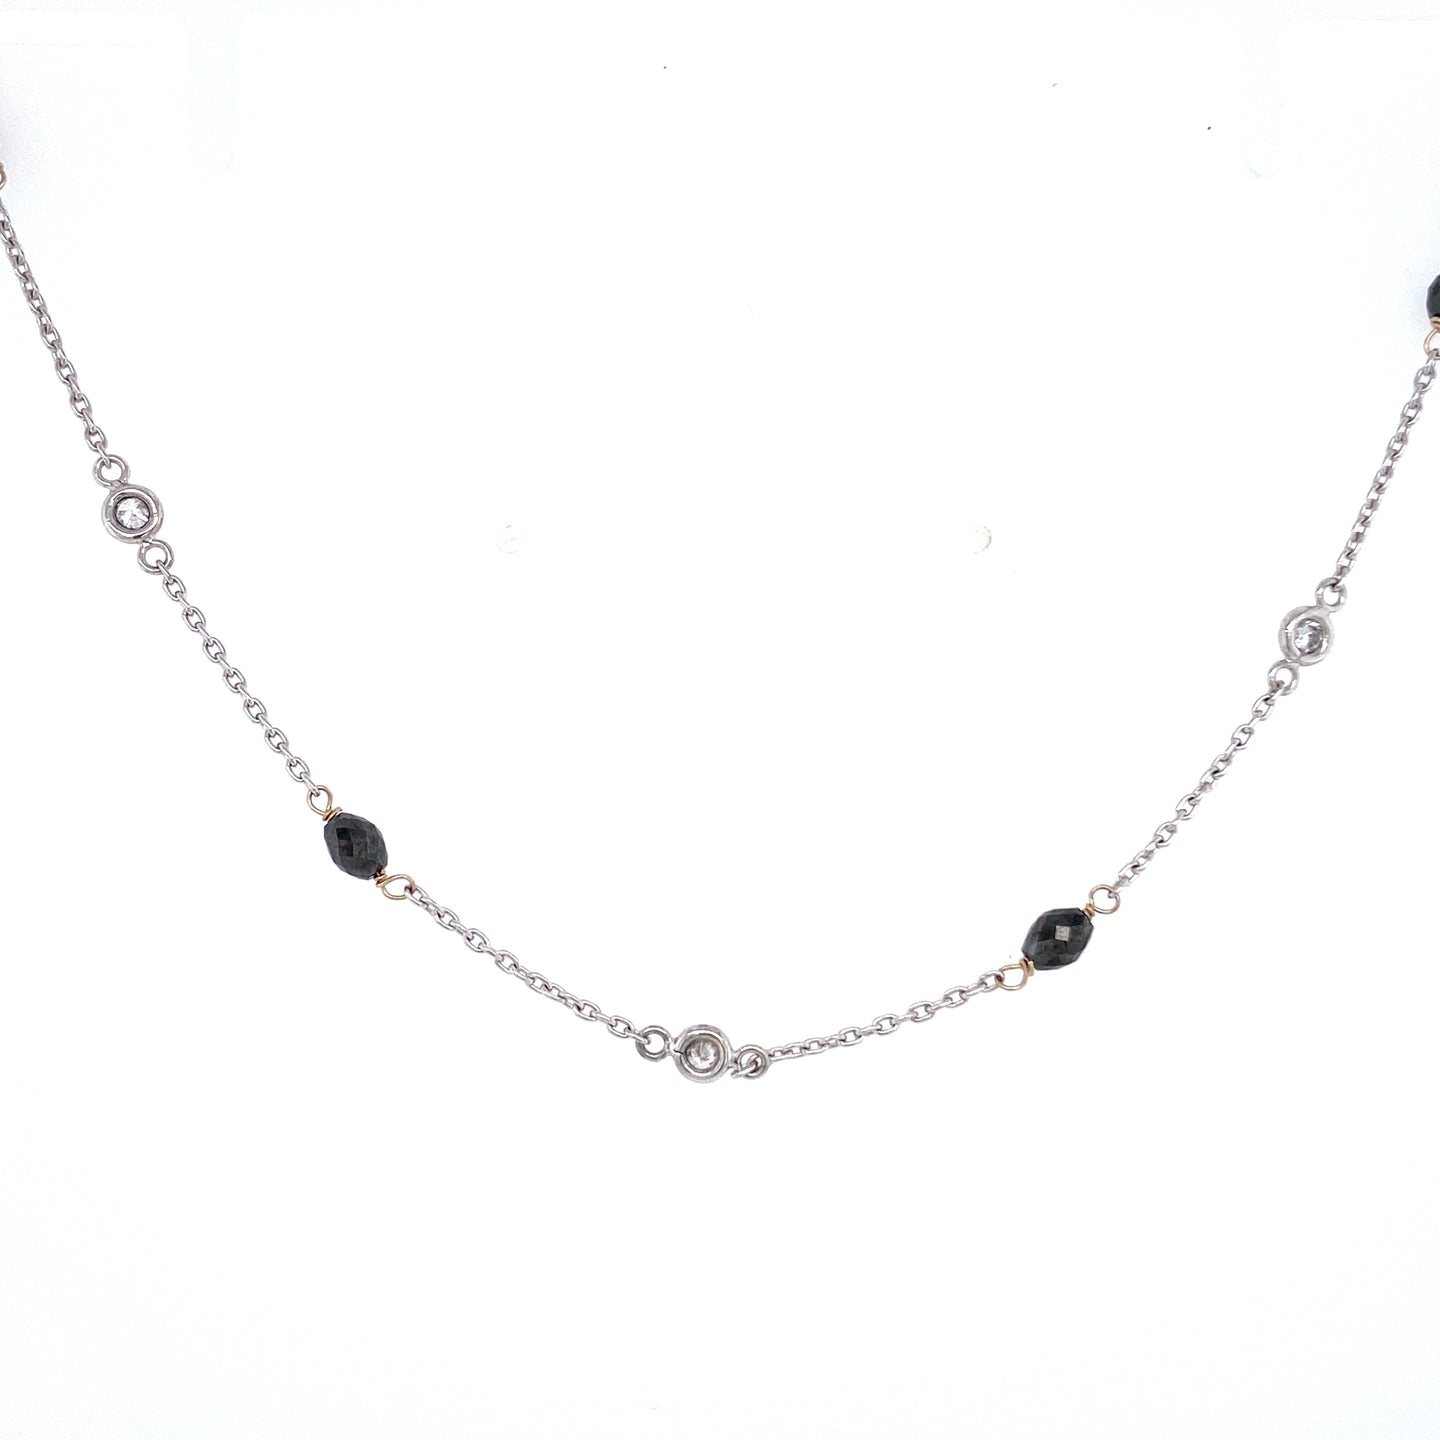 Black & White Diamond Station Necklace